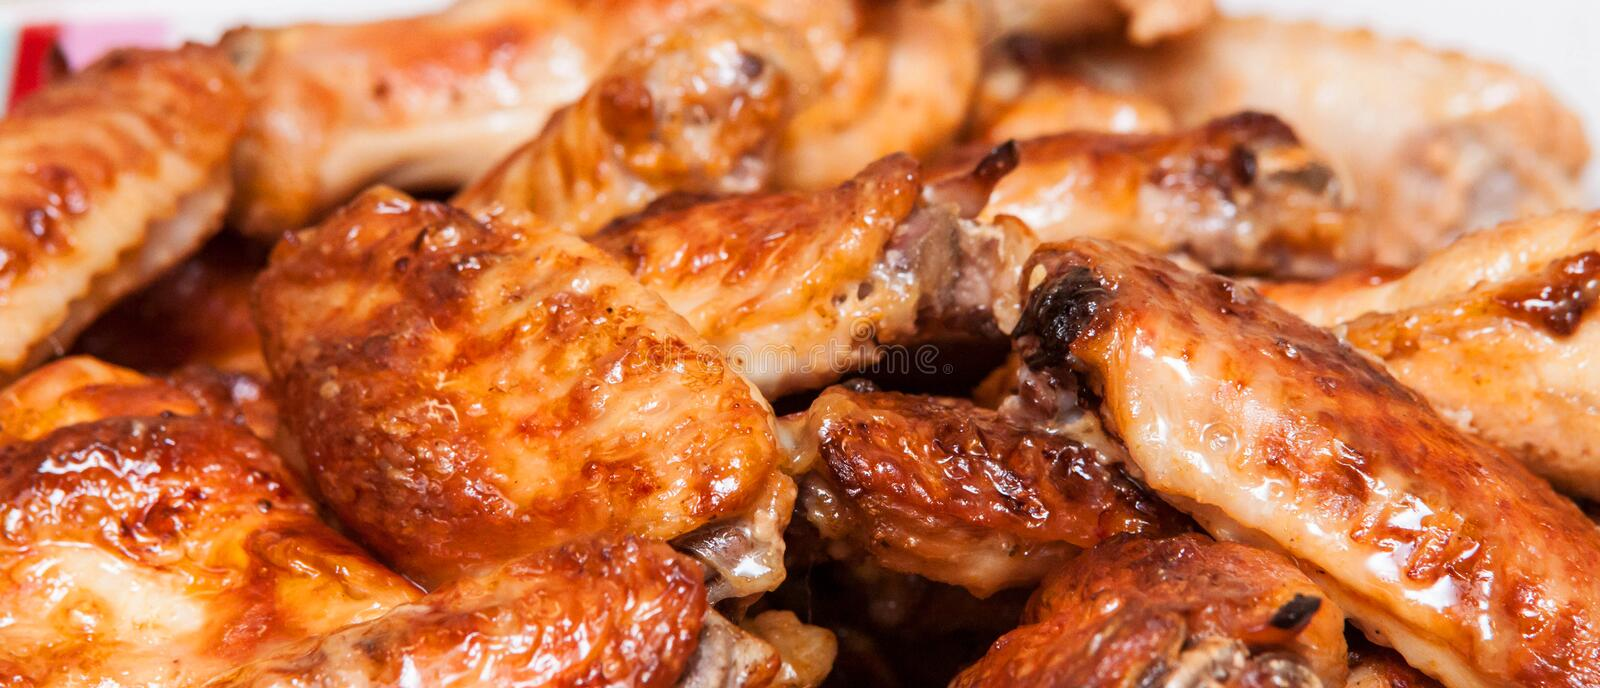 Hot and spicy, delicious deep fried buffalo chicken wings. Delicious deep fried buffalo chicken wings, appetizer, barbecue, bbq, food, fast, meal, meat, sauce royalty free stock photography